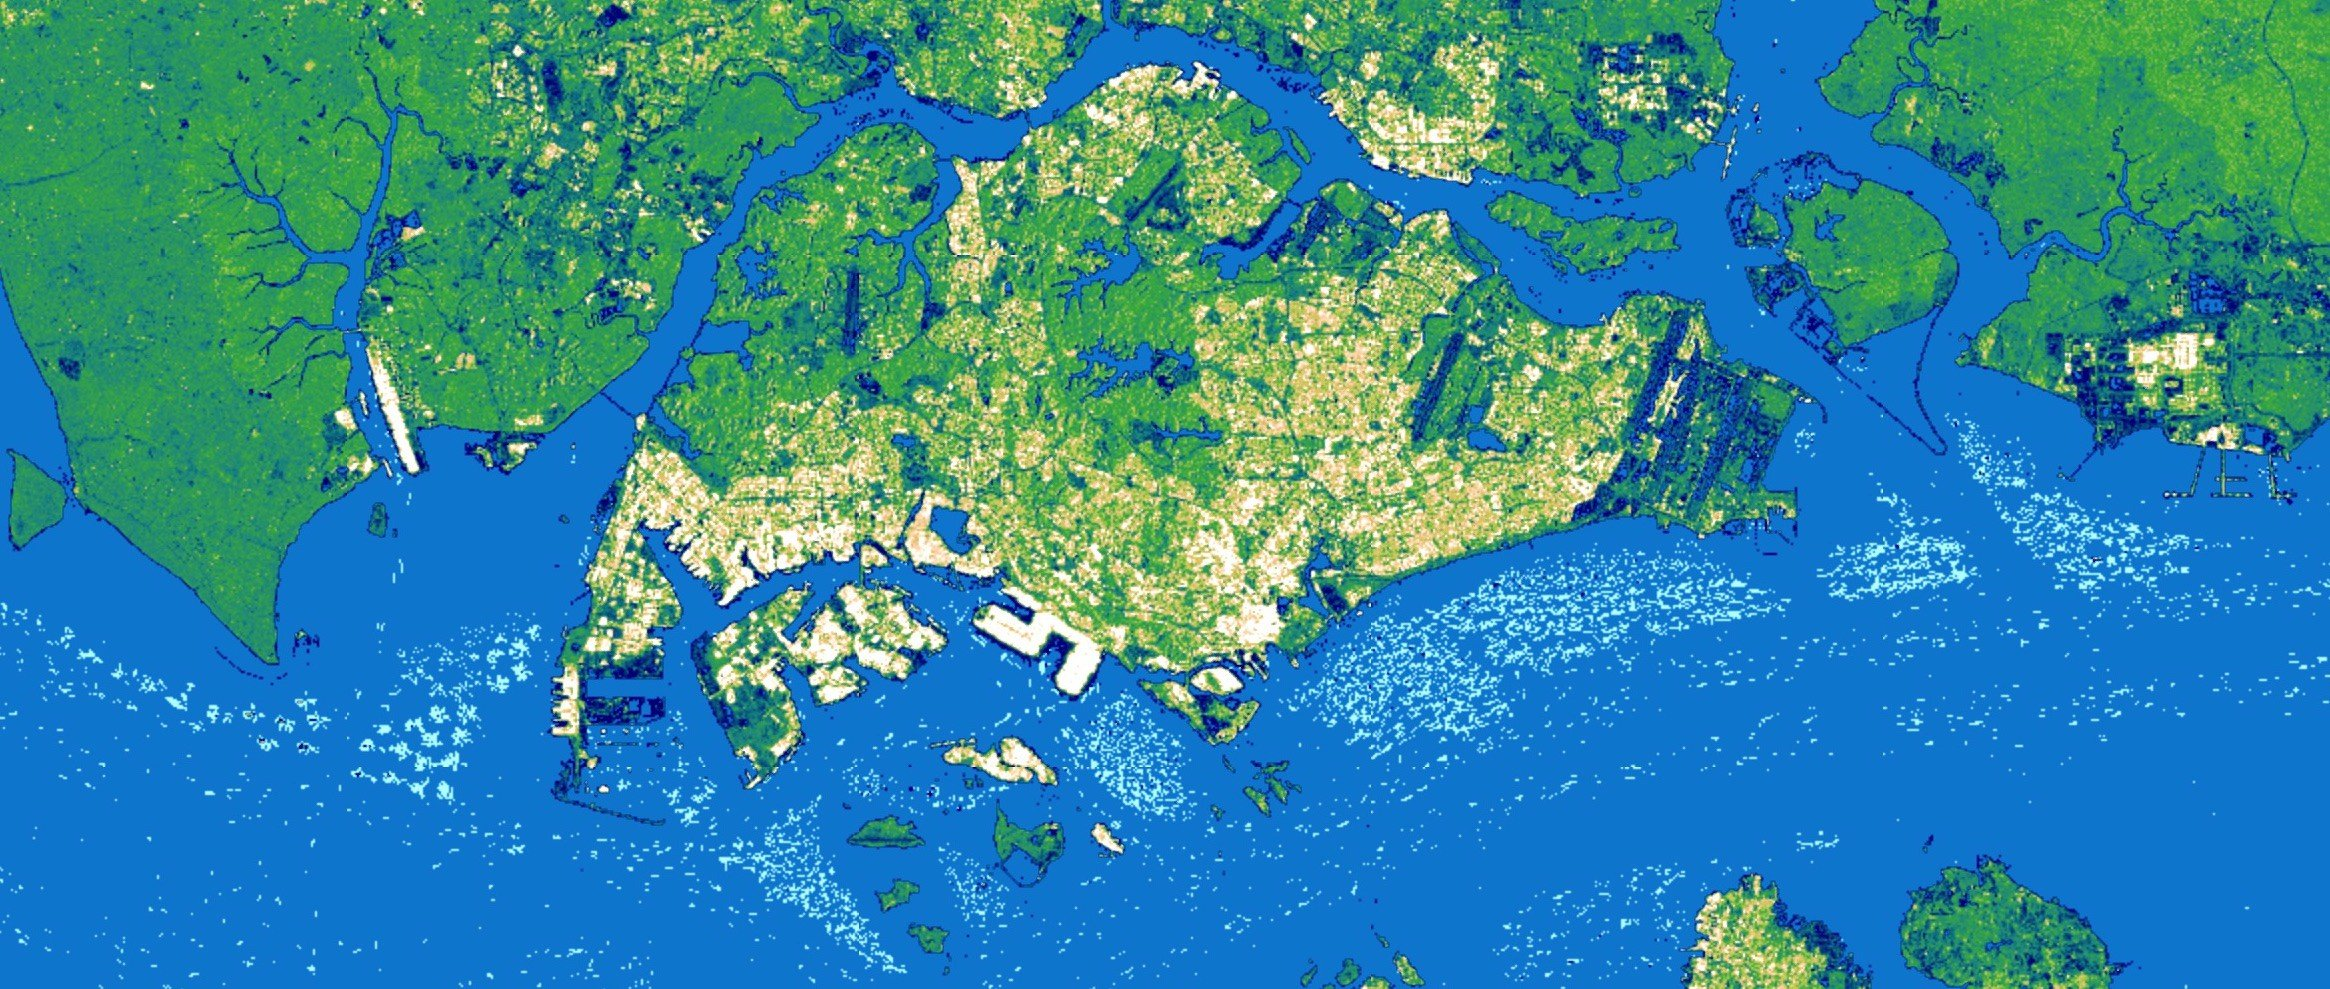 A three month Sentinel-1 SAR composite over Singapore with lighter colors capturing economic activity on land and at sea